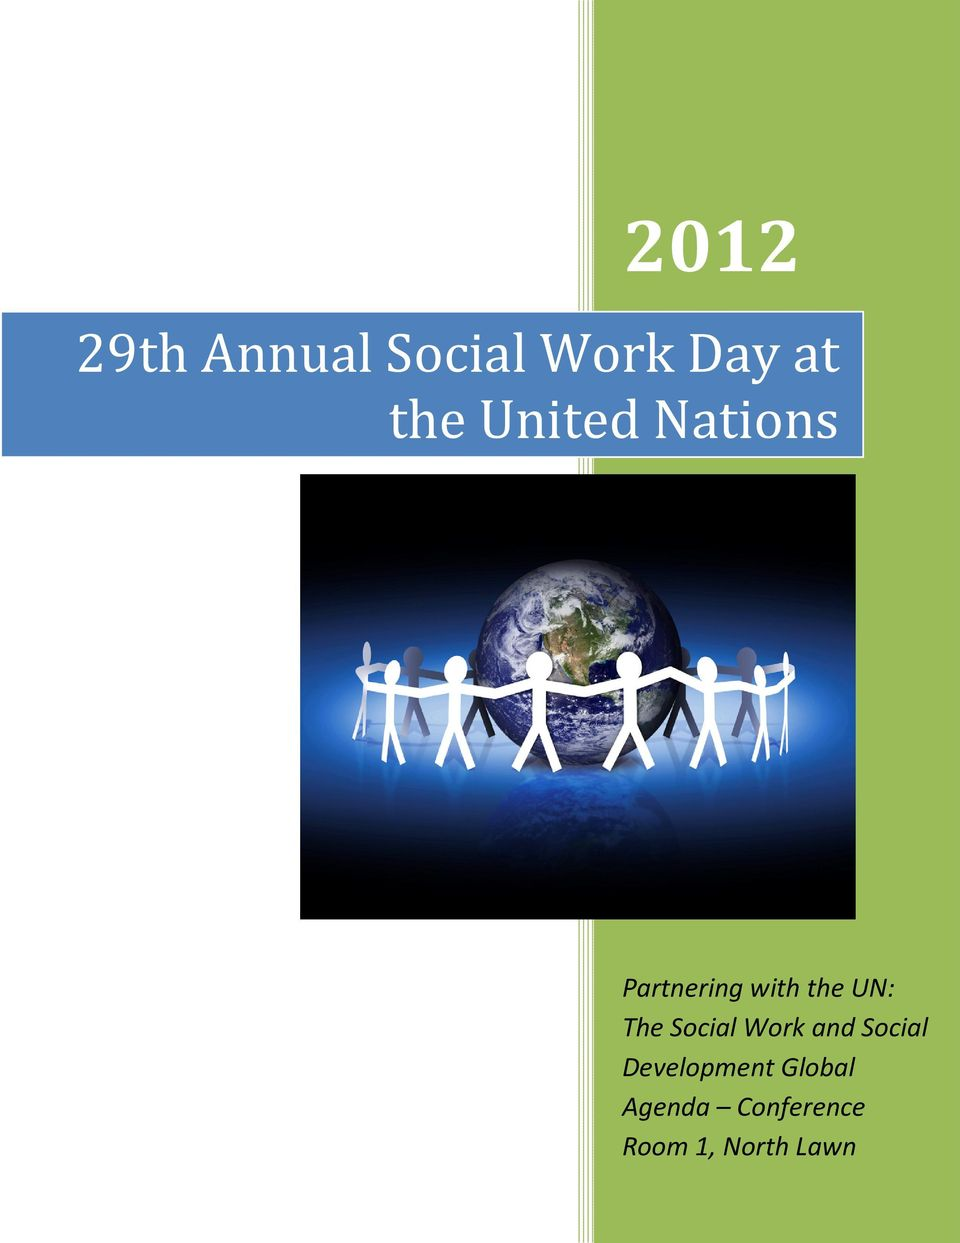 The Social Work and Social Development